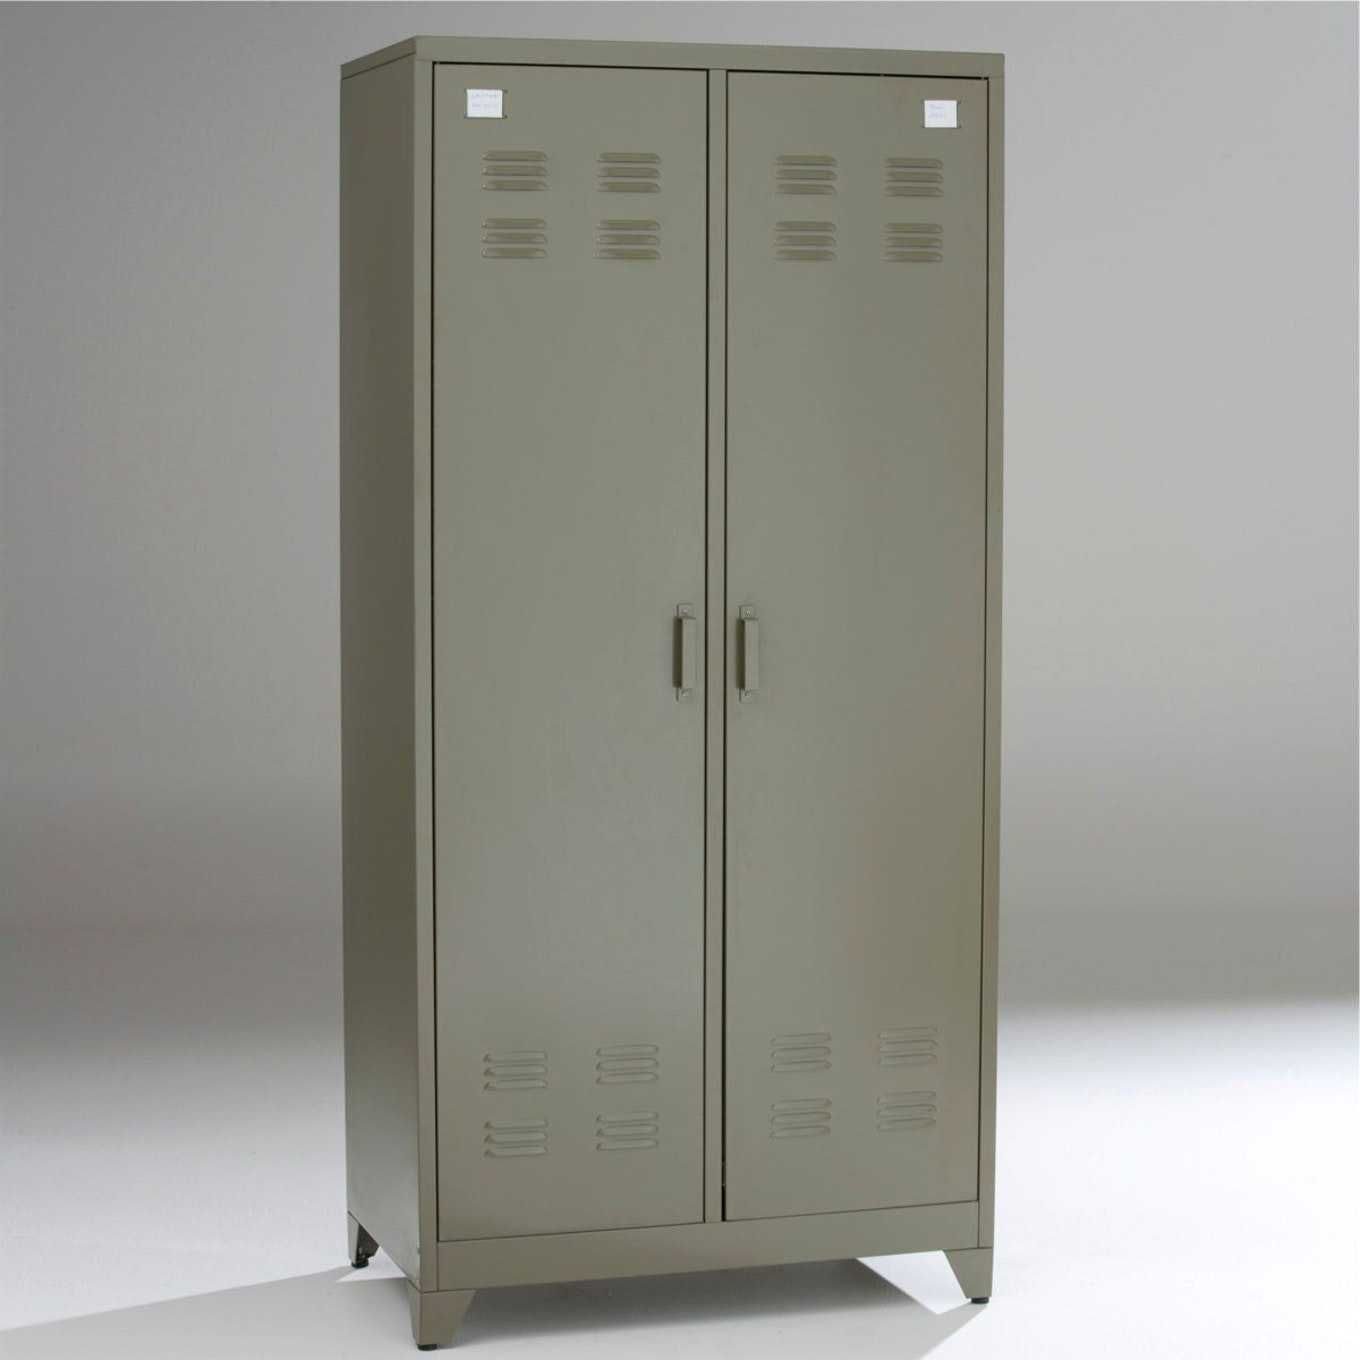 Etourdissant Armoire Casier Metallique Armoire Locker Storage Storage